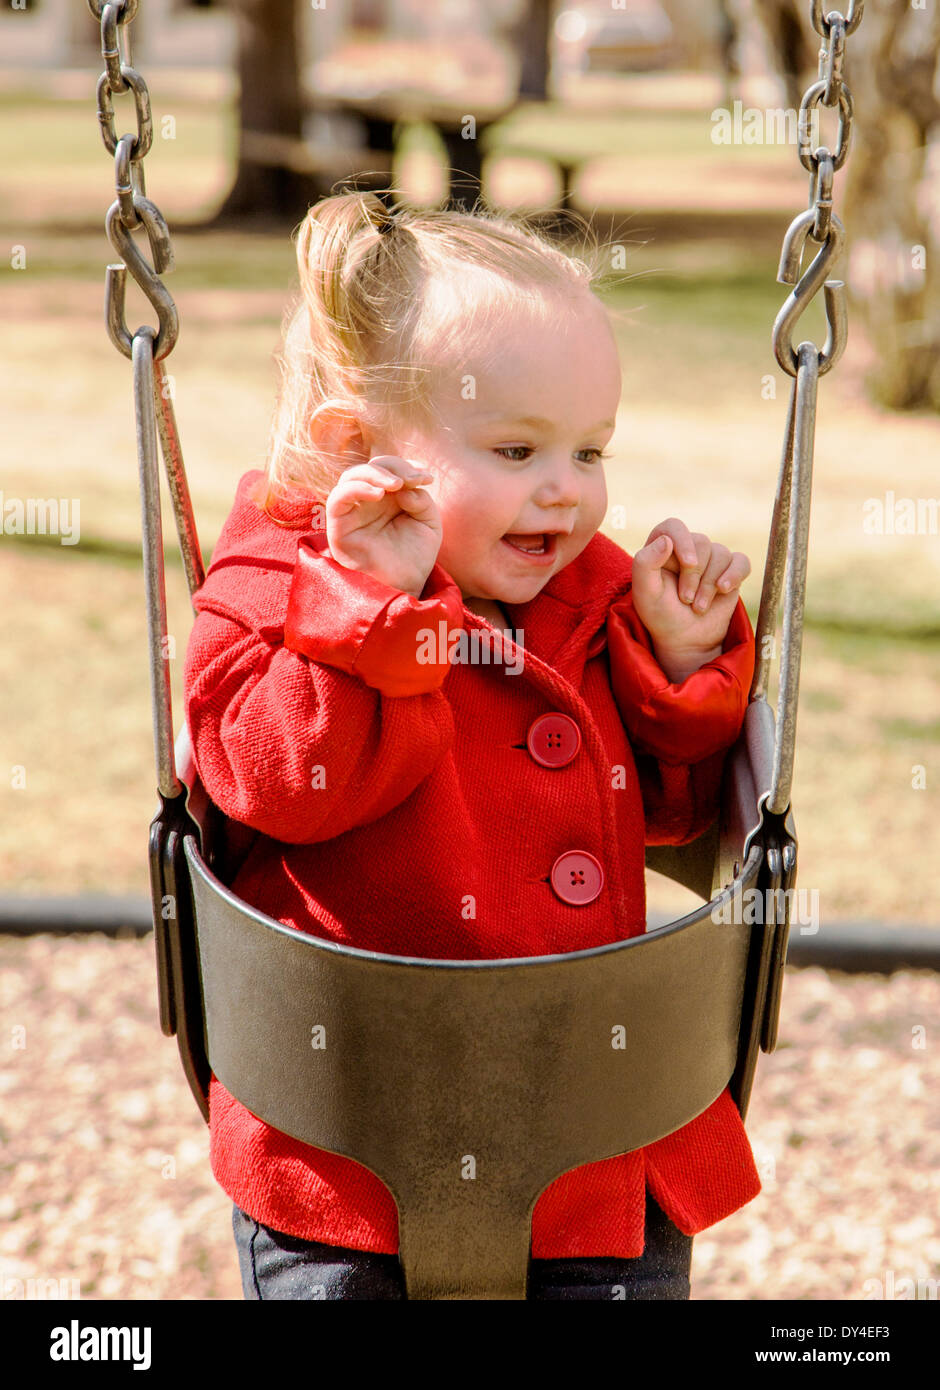 Adorable, cute 16 month little girl swinging on a park playground - Stock Image